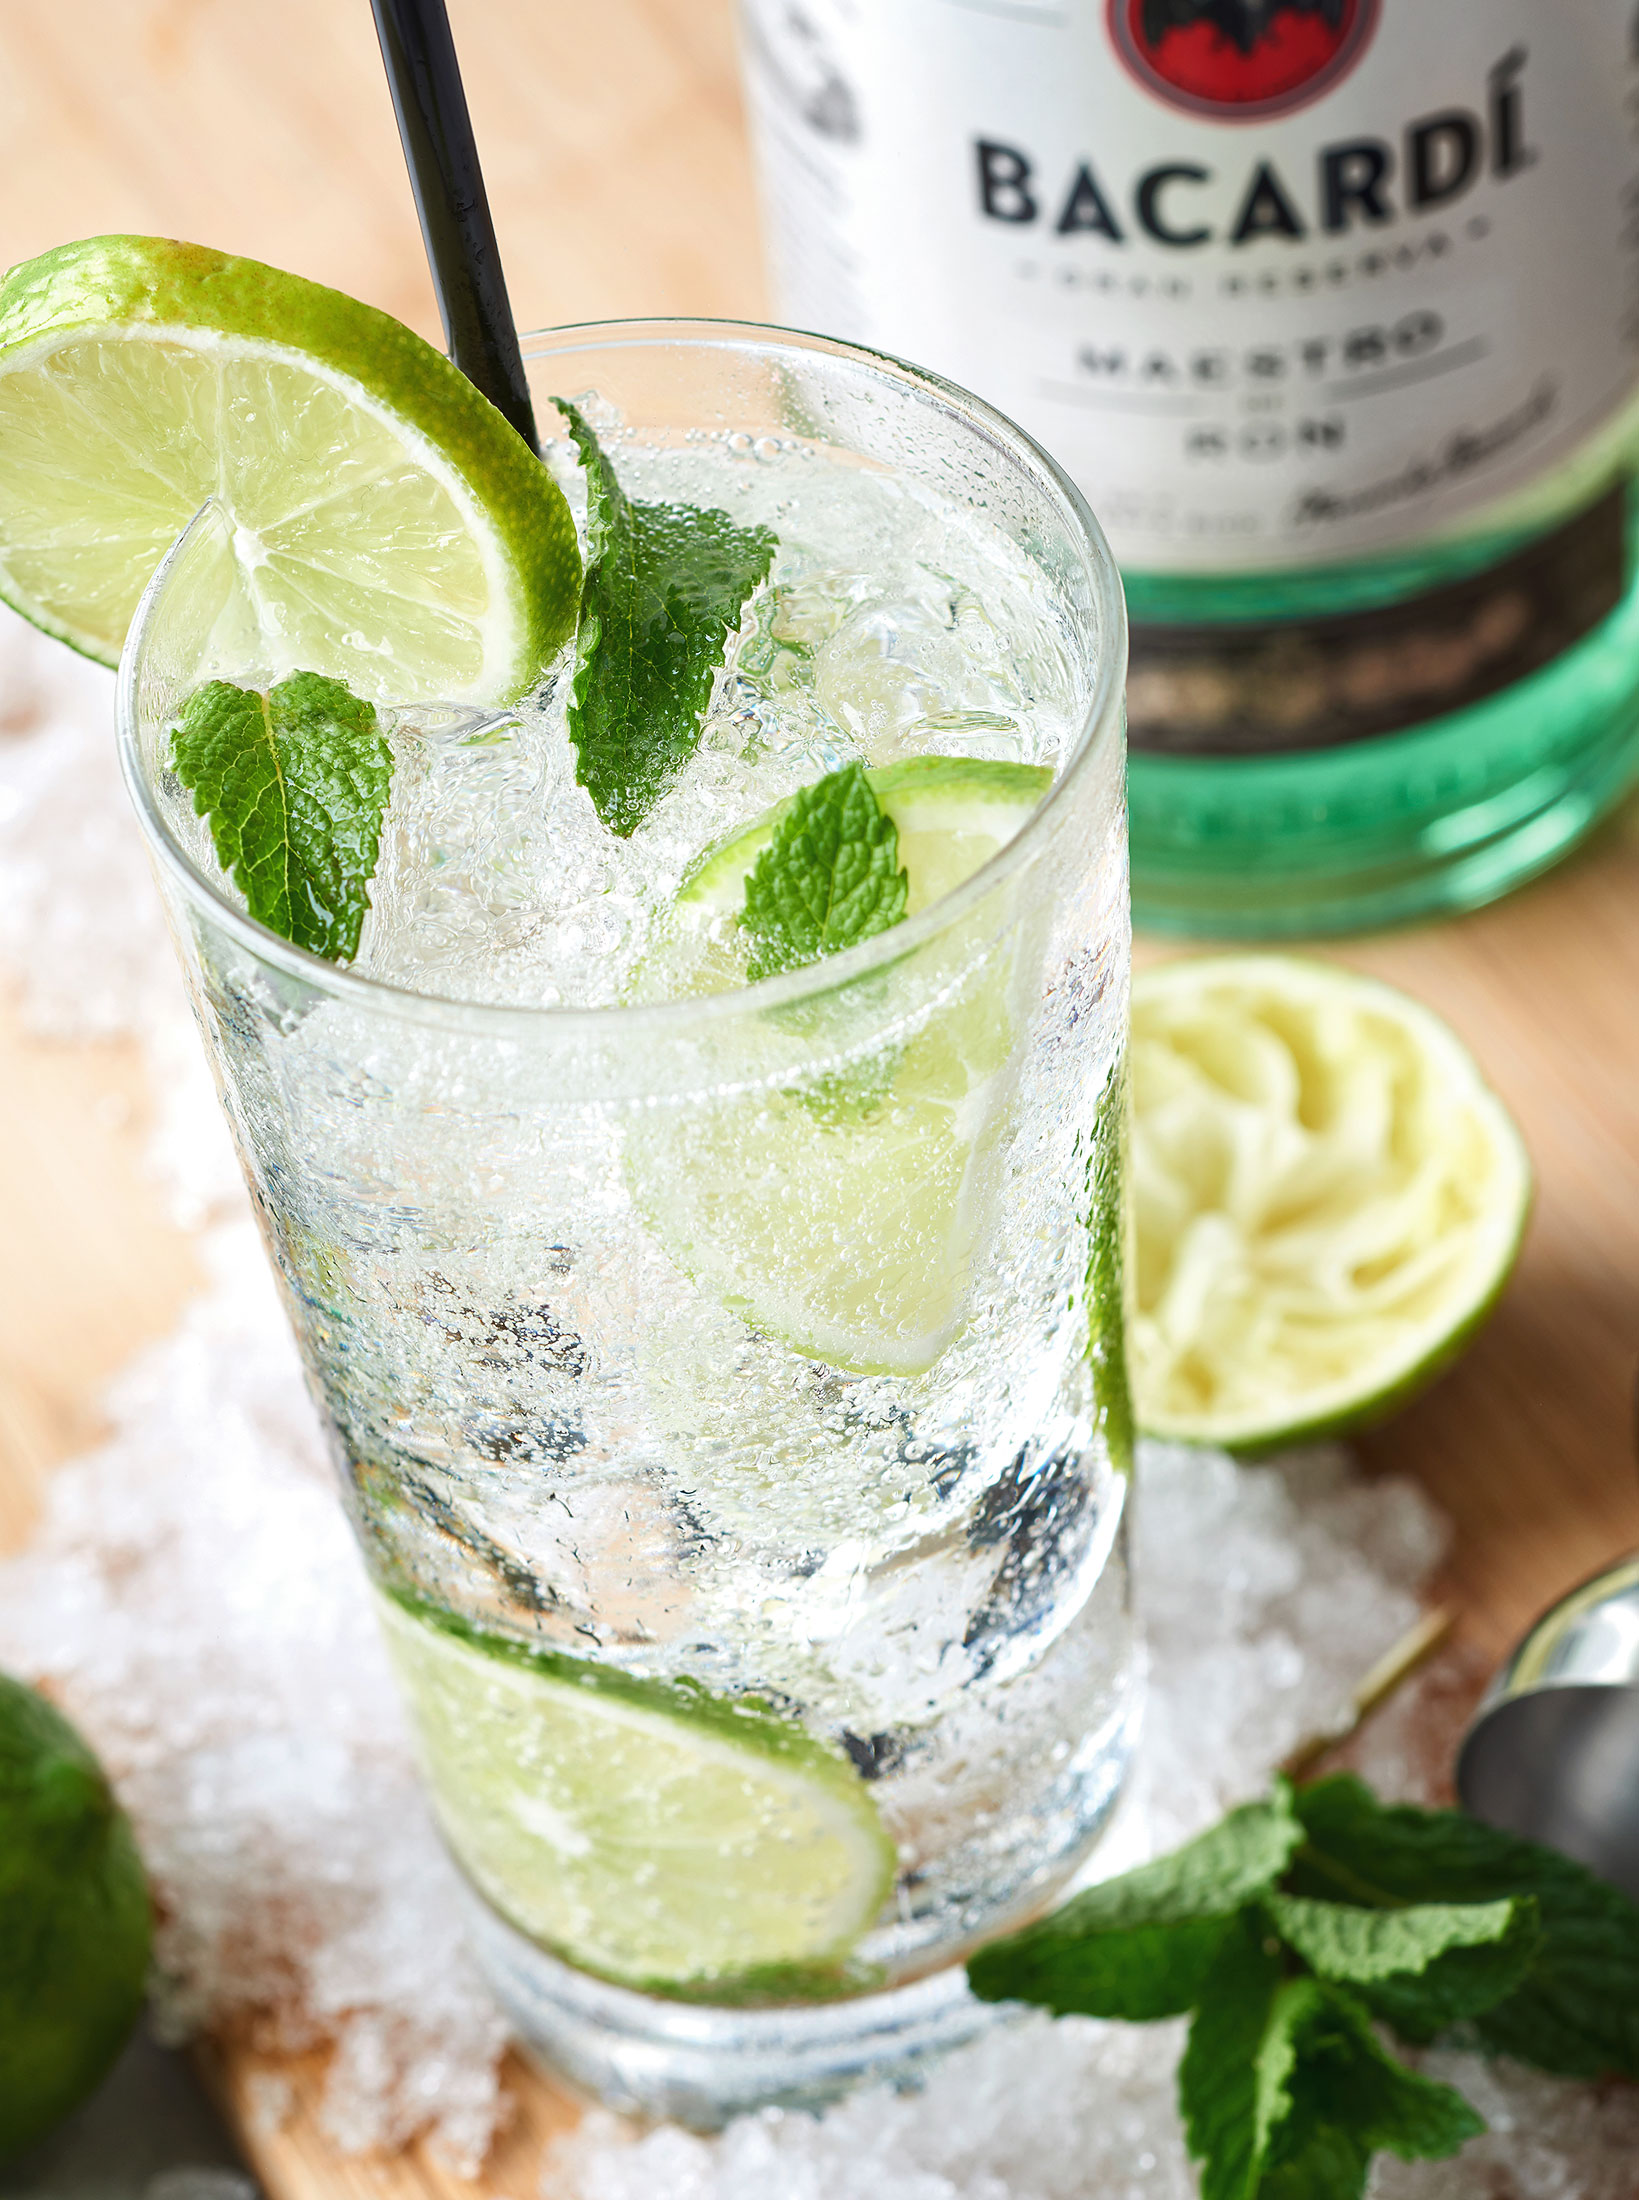 aaronvan_commercial_beverage_photography_bacardi_mojito_closeup